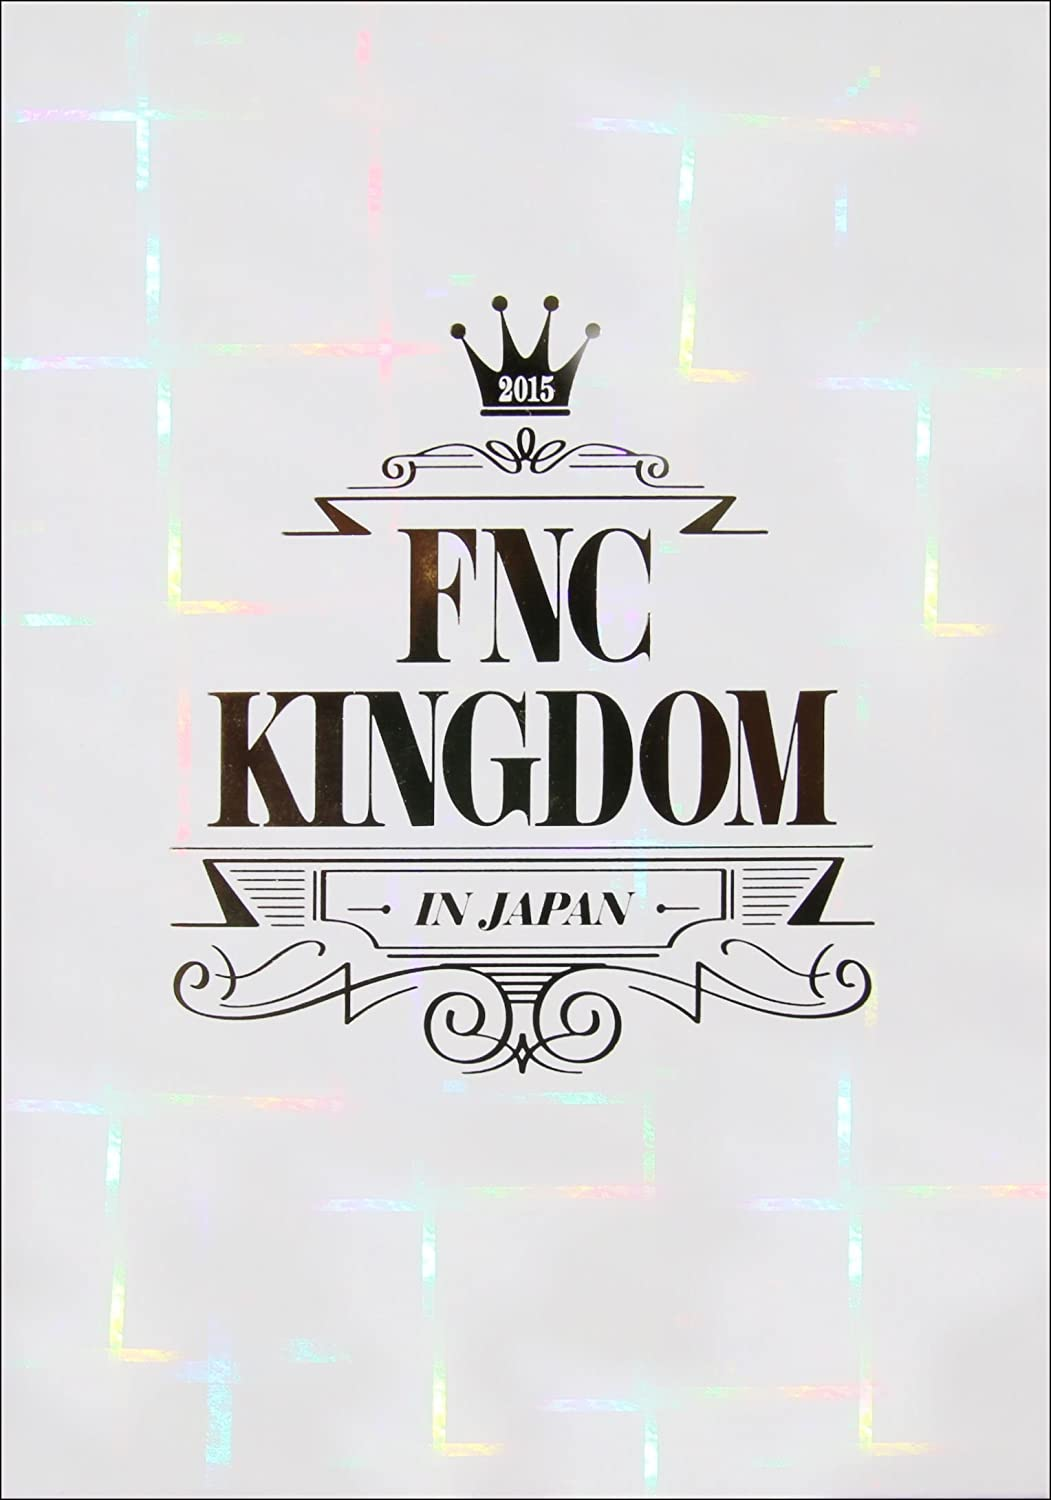 2015 FNC KINGDOM IN JAPAN(Blu-ray) B01COL6G4G